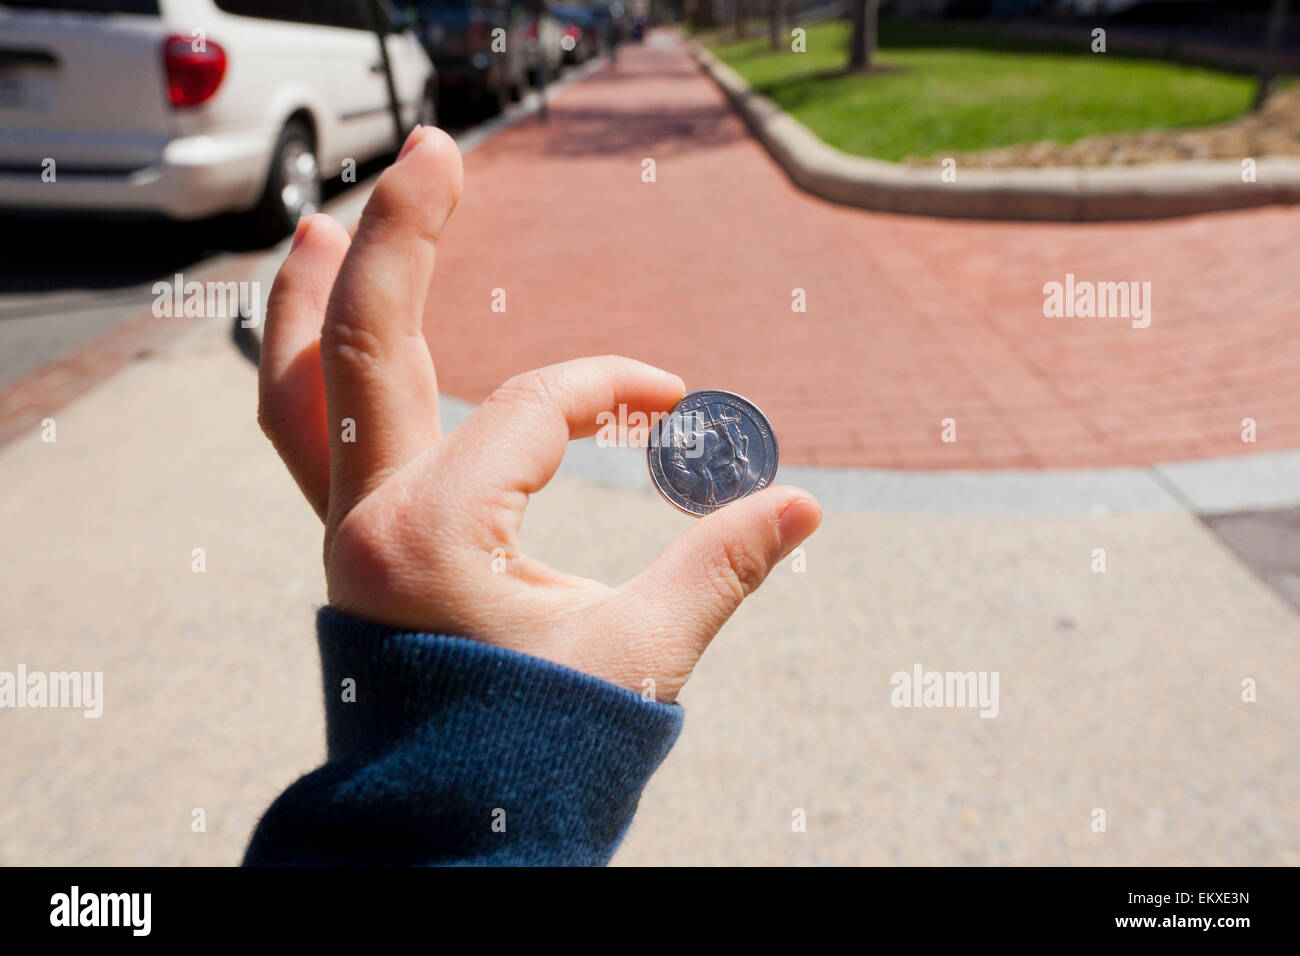 Boy, age 6, holding a coin found on sidewalk - USA - Stock Image